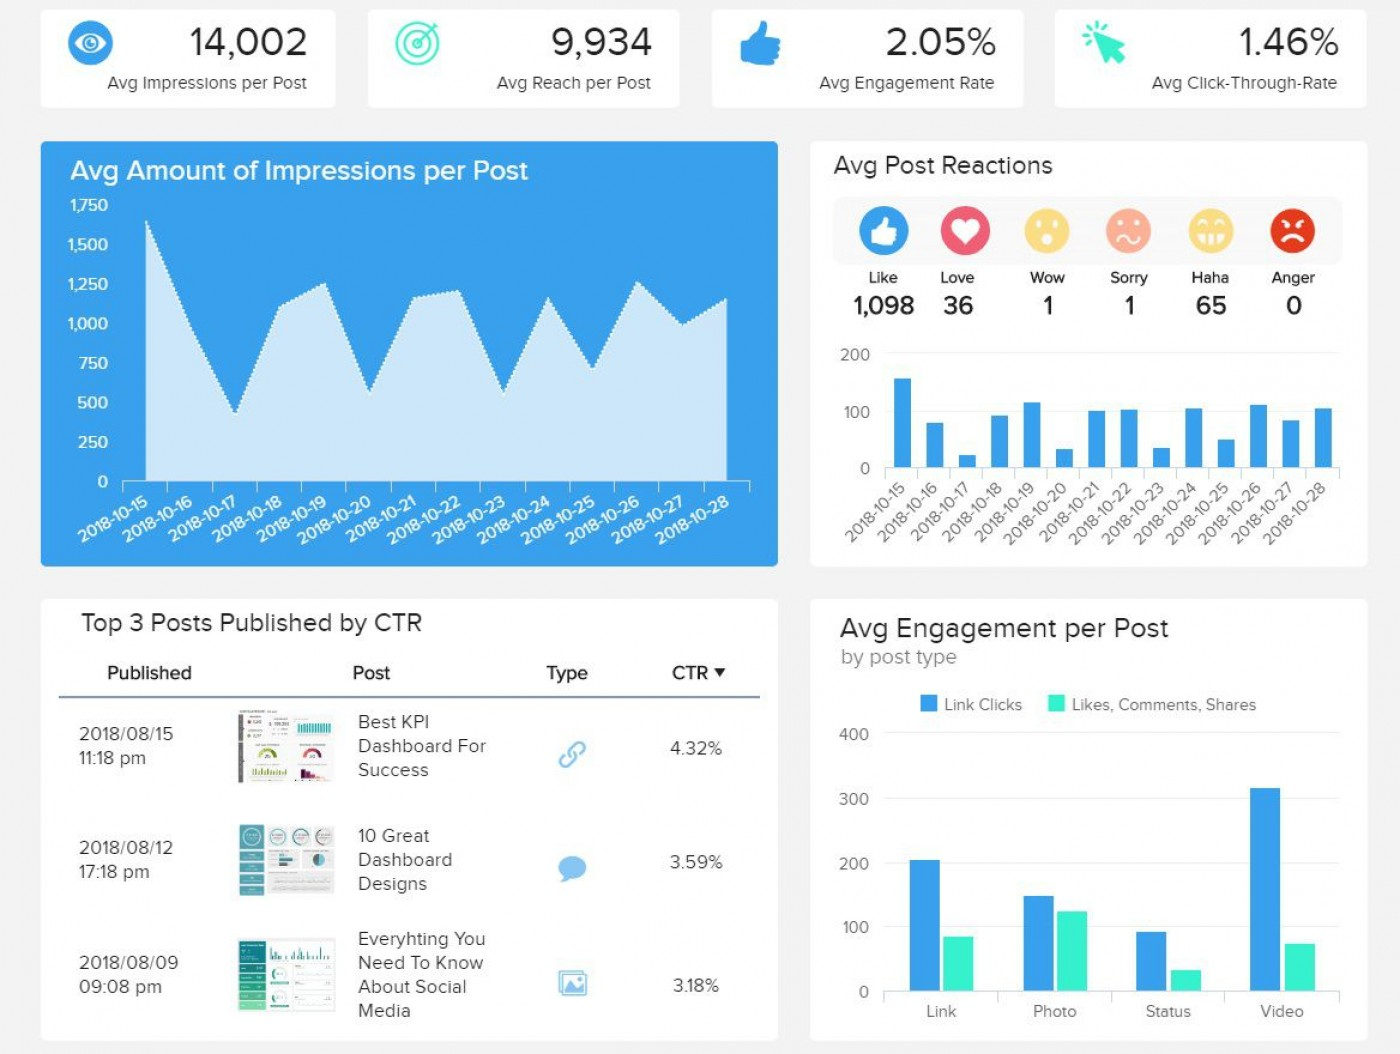 003 Awesome Social Media Report Template Picture  Powerpoint Free Download1400